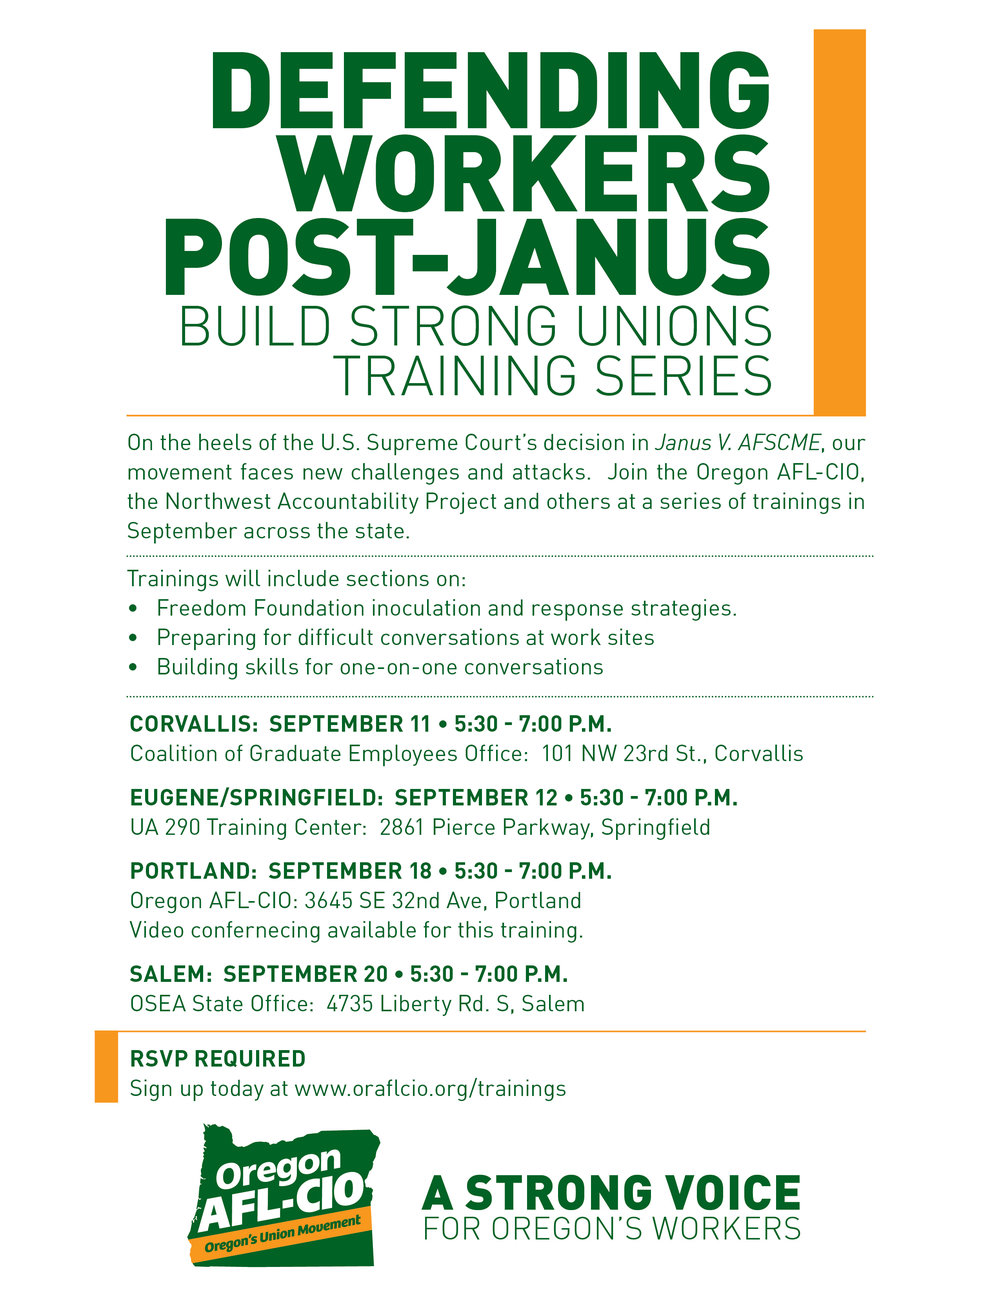 2018-08-09 Defending Workers Post Janus Training Flier2.jpg